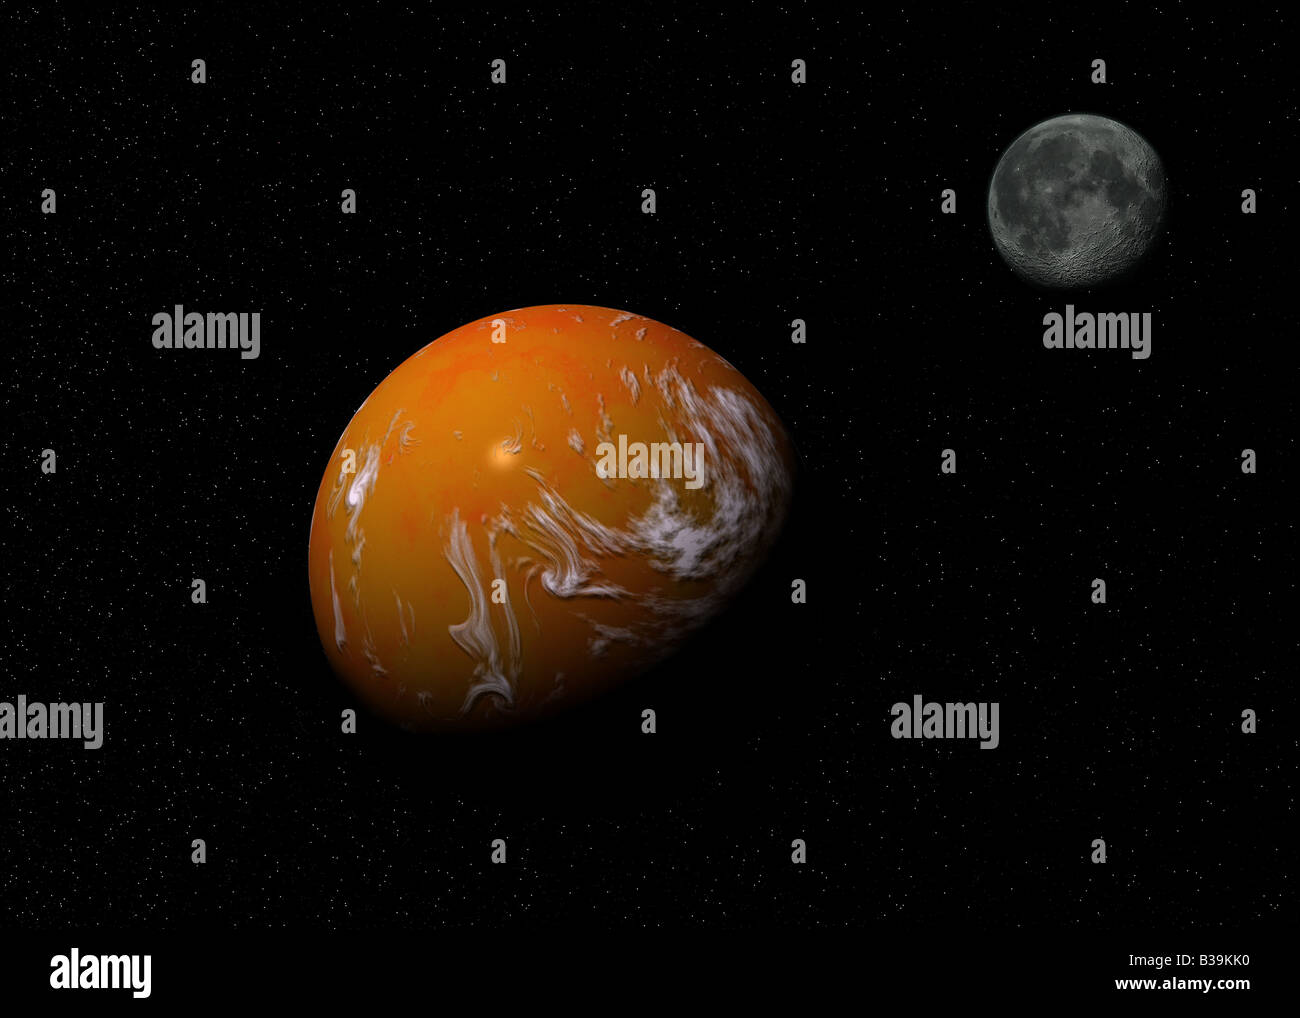 starry sky with planets - photo #2